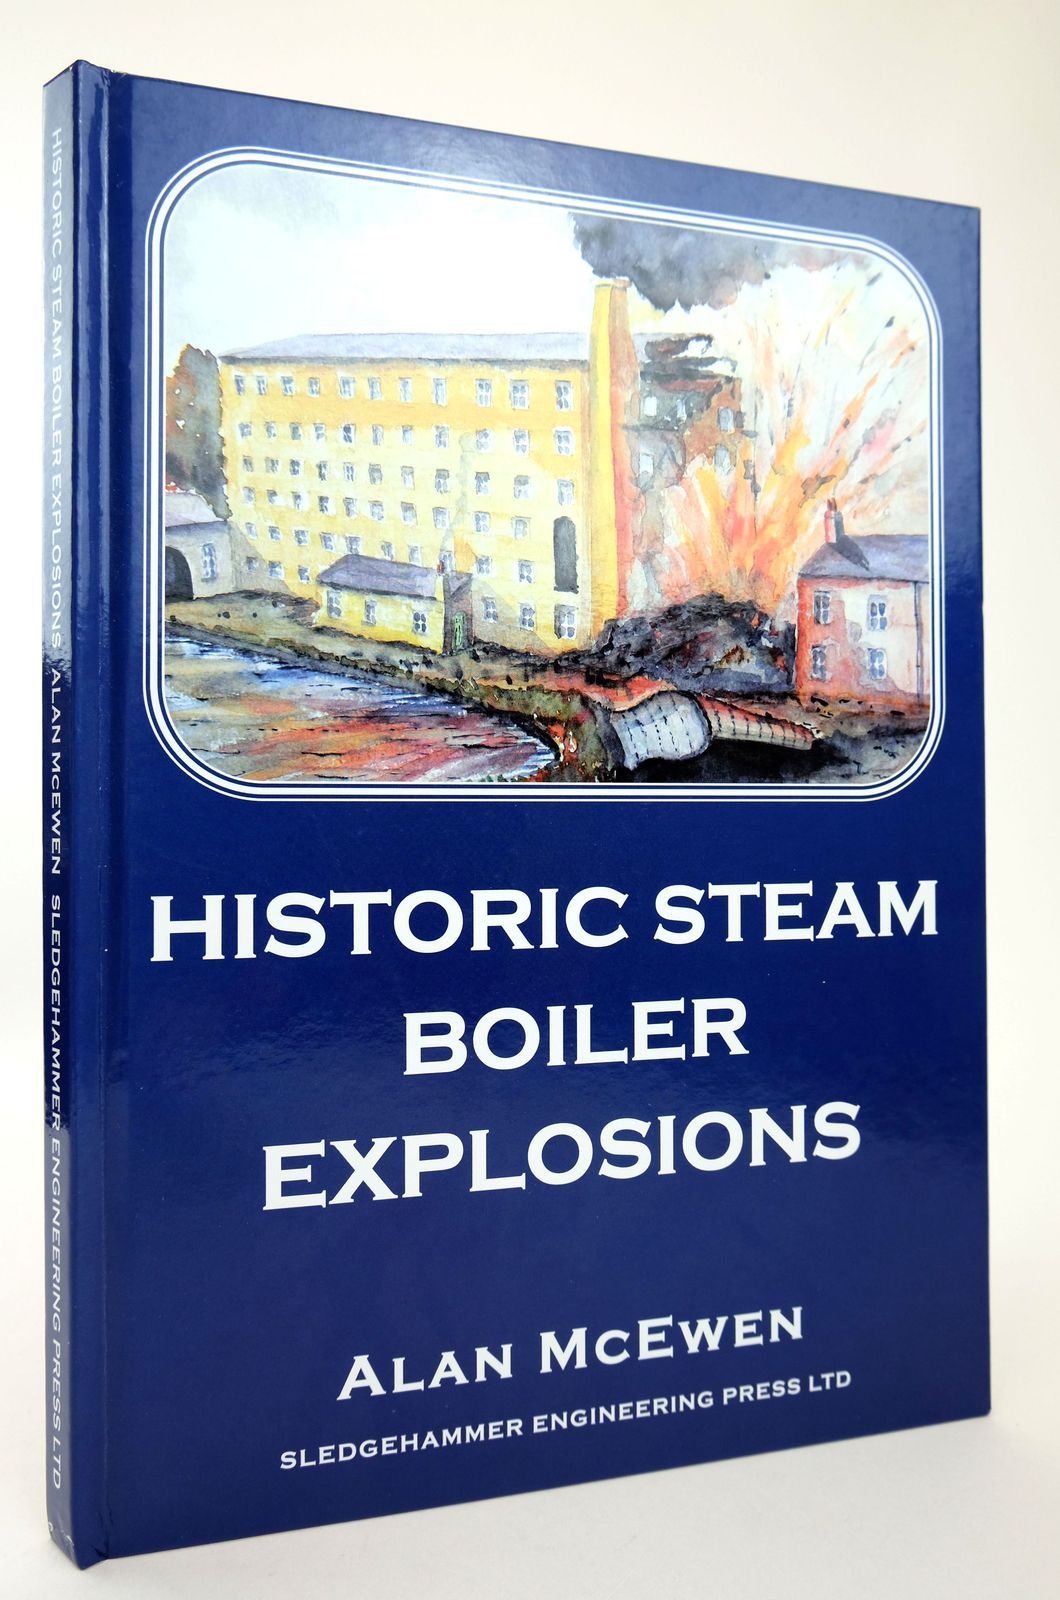 Photo of HISTORIC STEAM BOILER EXPLOSIONS written by McEwen, Alan published by Sledgehammer Engineering Press (STOCK CODE: 1818756)  for sale by Stella & Rose's Books